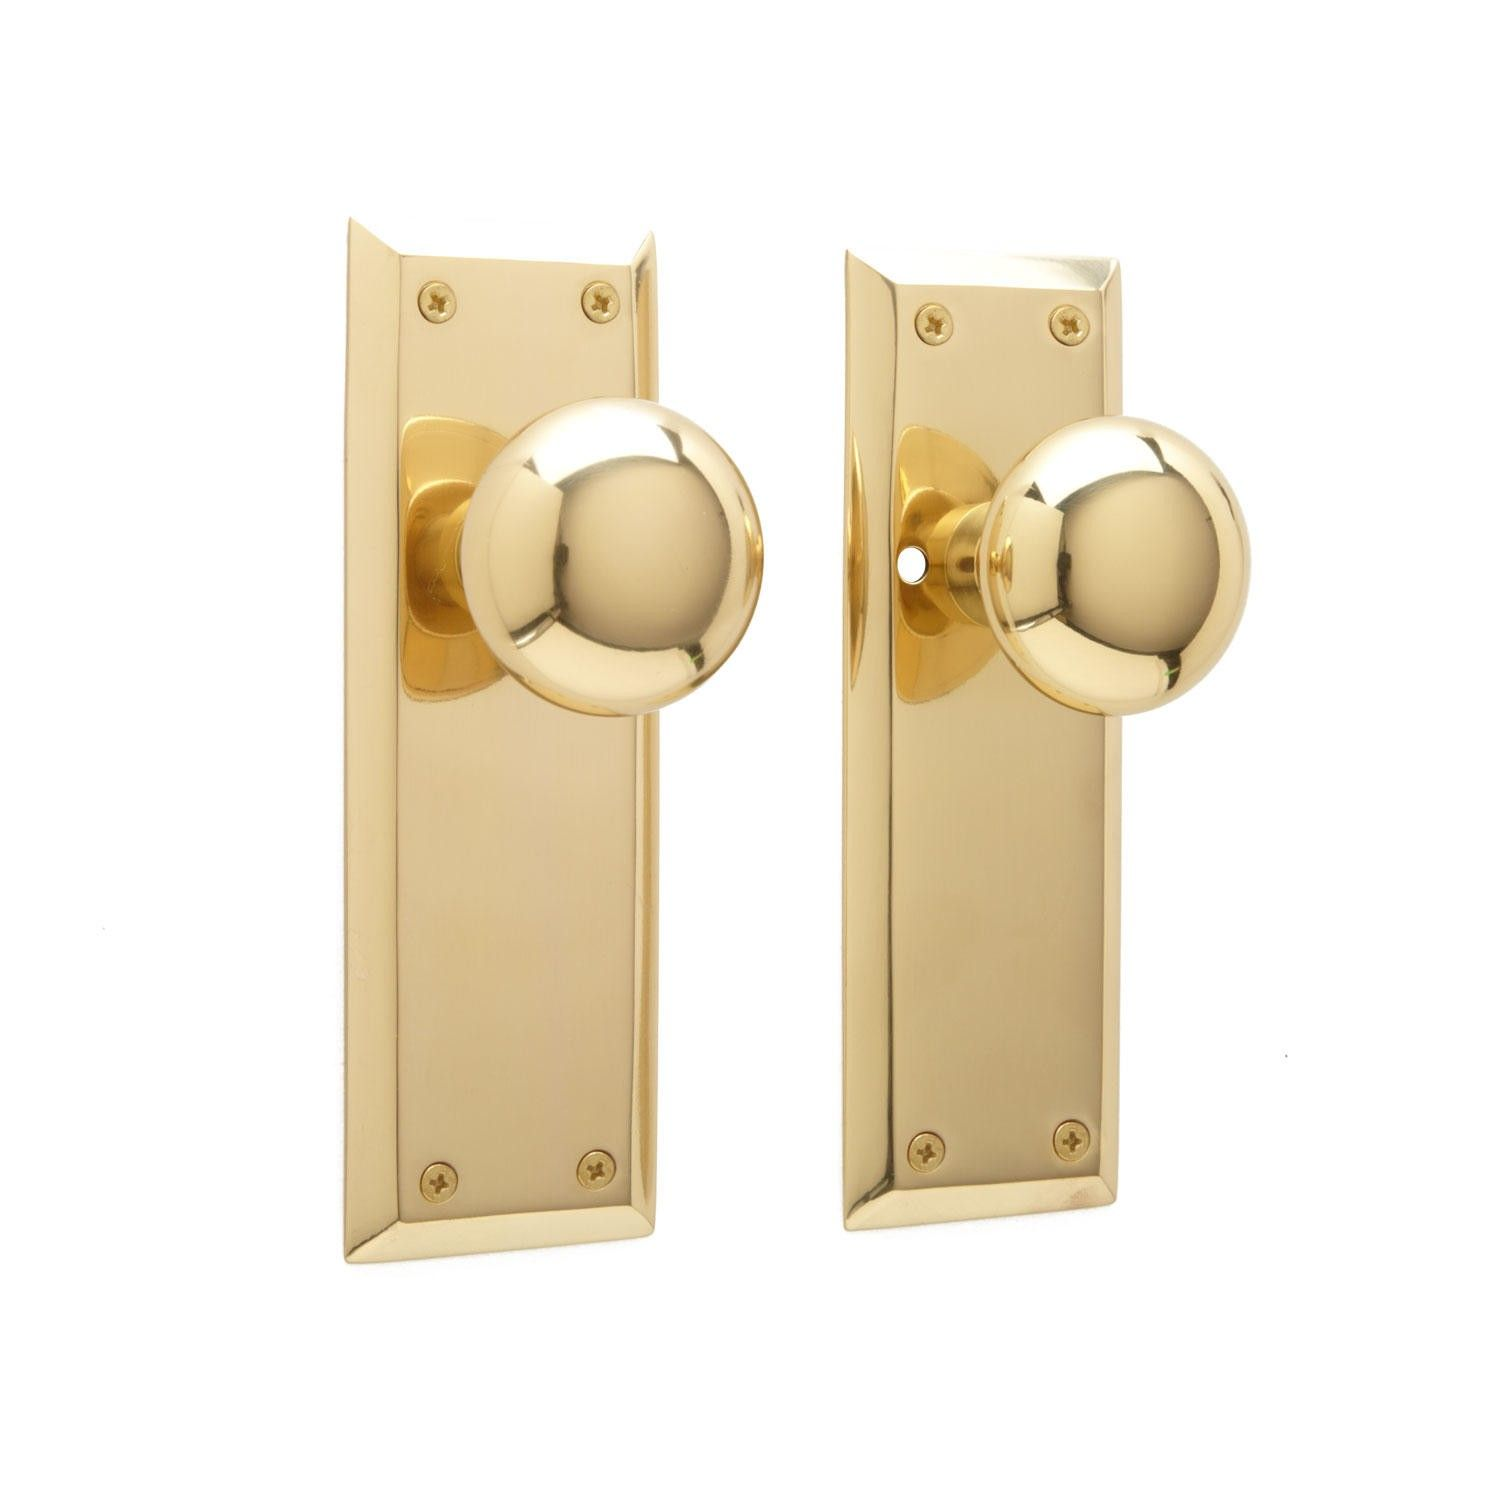 new york door knob plate set privacy passage and dummy door